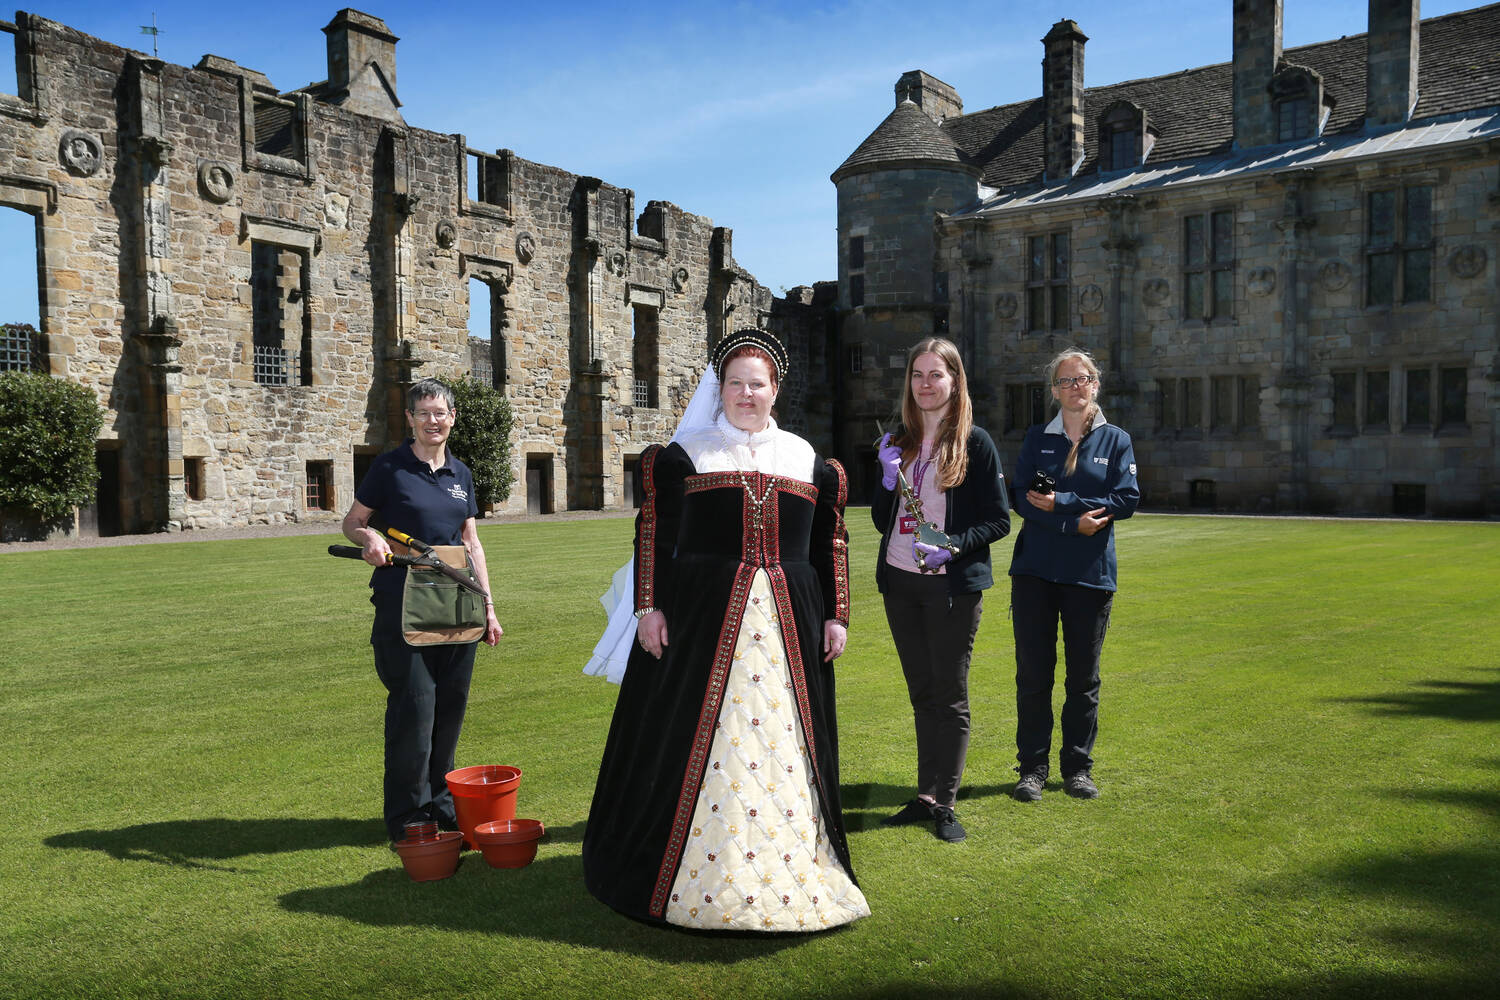 Volunteers stand on the lawn at Falkland Palace. One is dressed as Mary, Queen of Scots; the second holds a gardening tool; the third a candlestick; and the fourth a pair of binoculars.